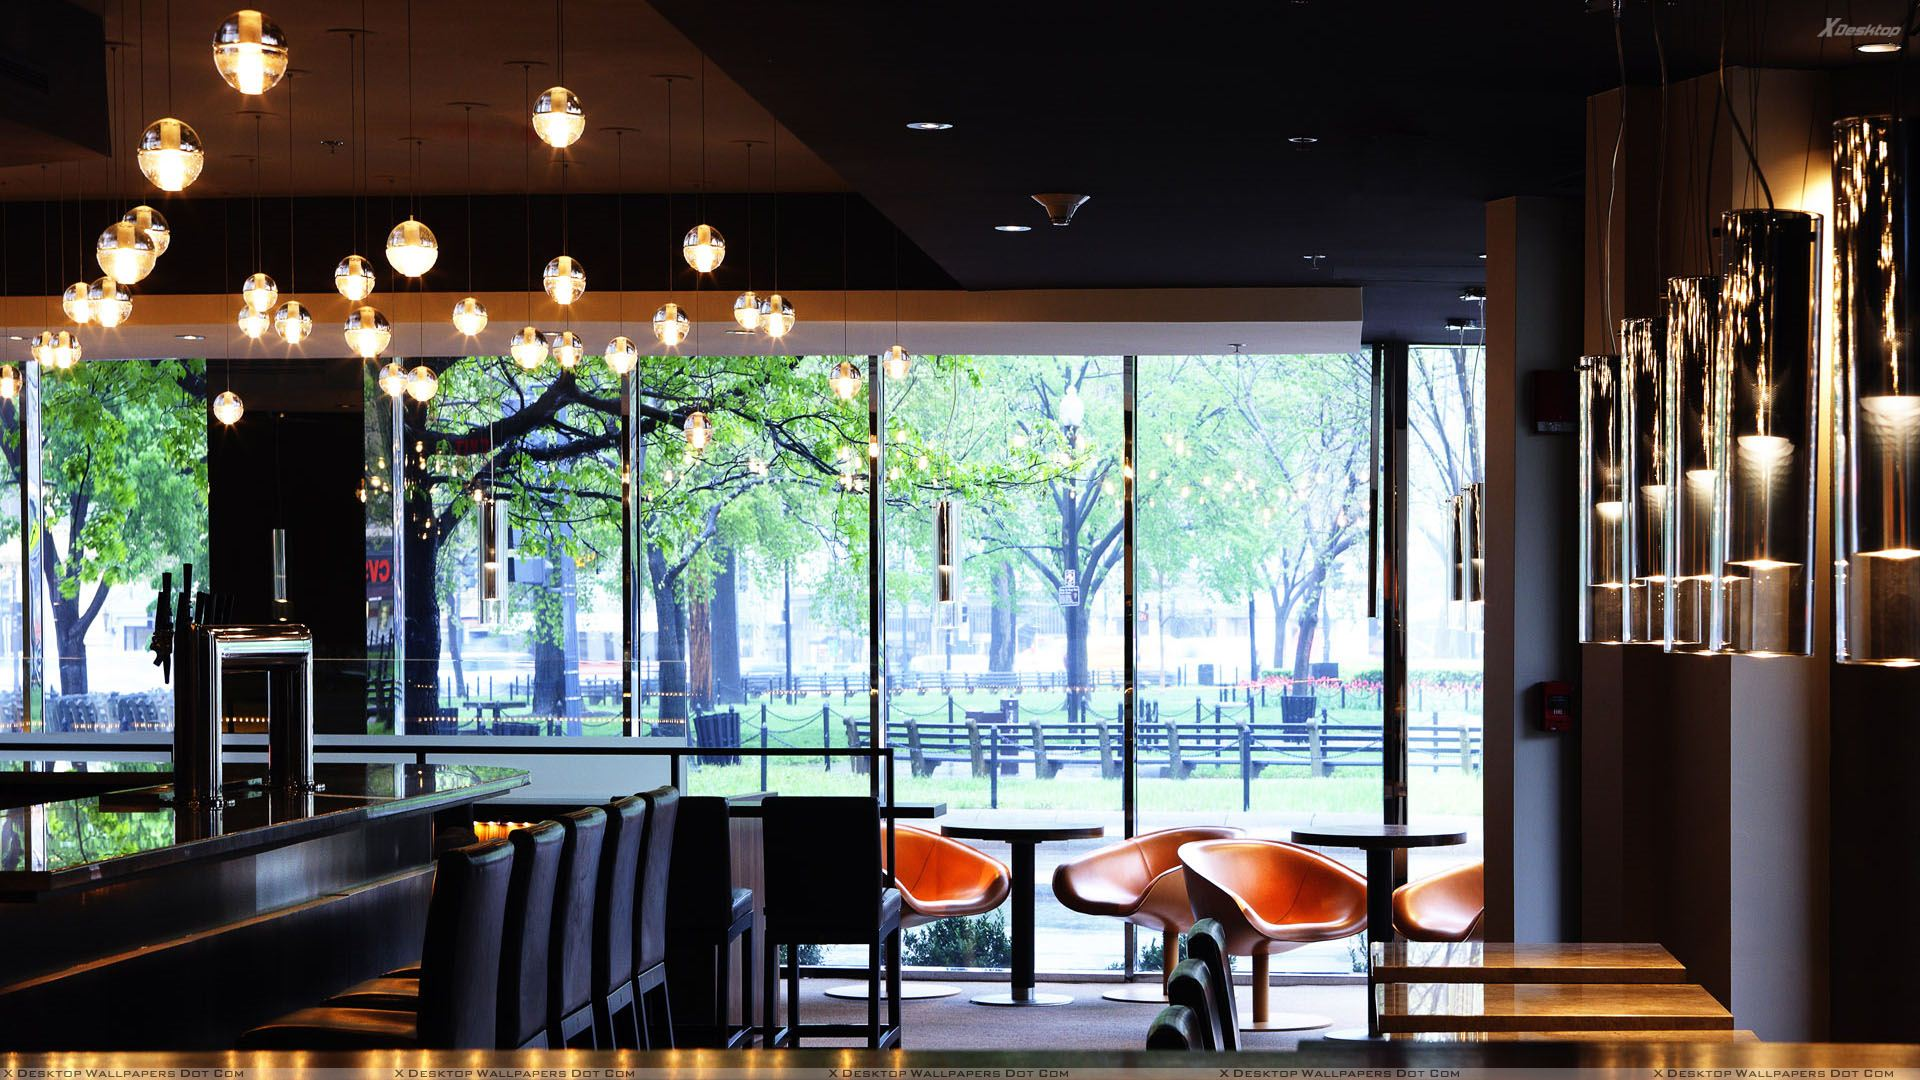 Chairs and table in coffee bar wallpaper